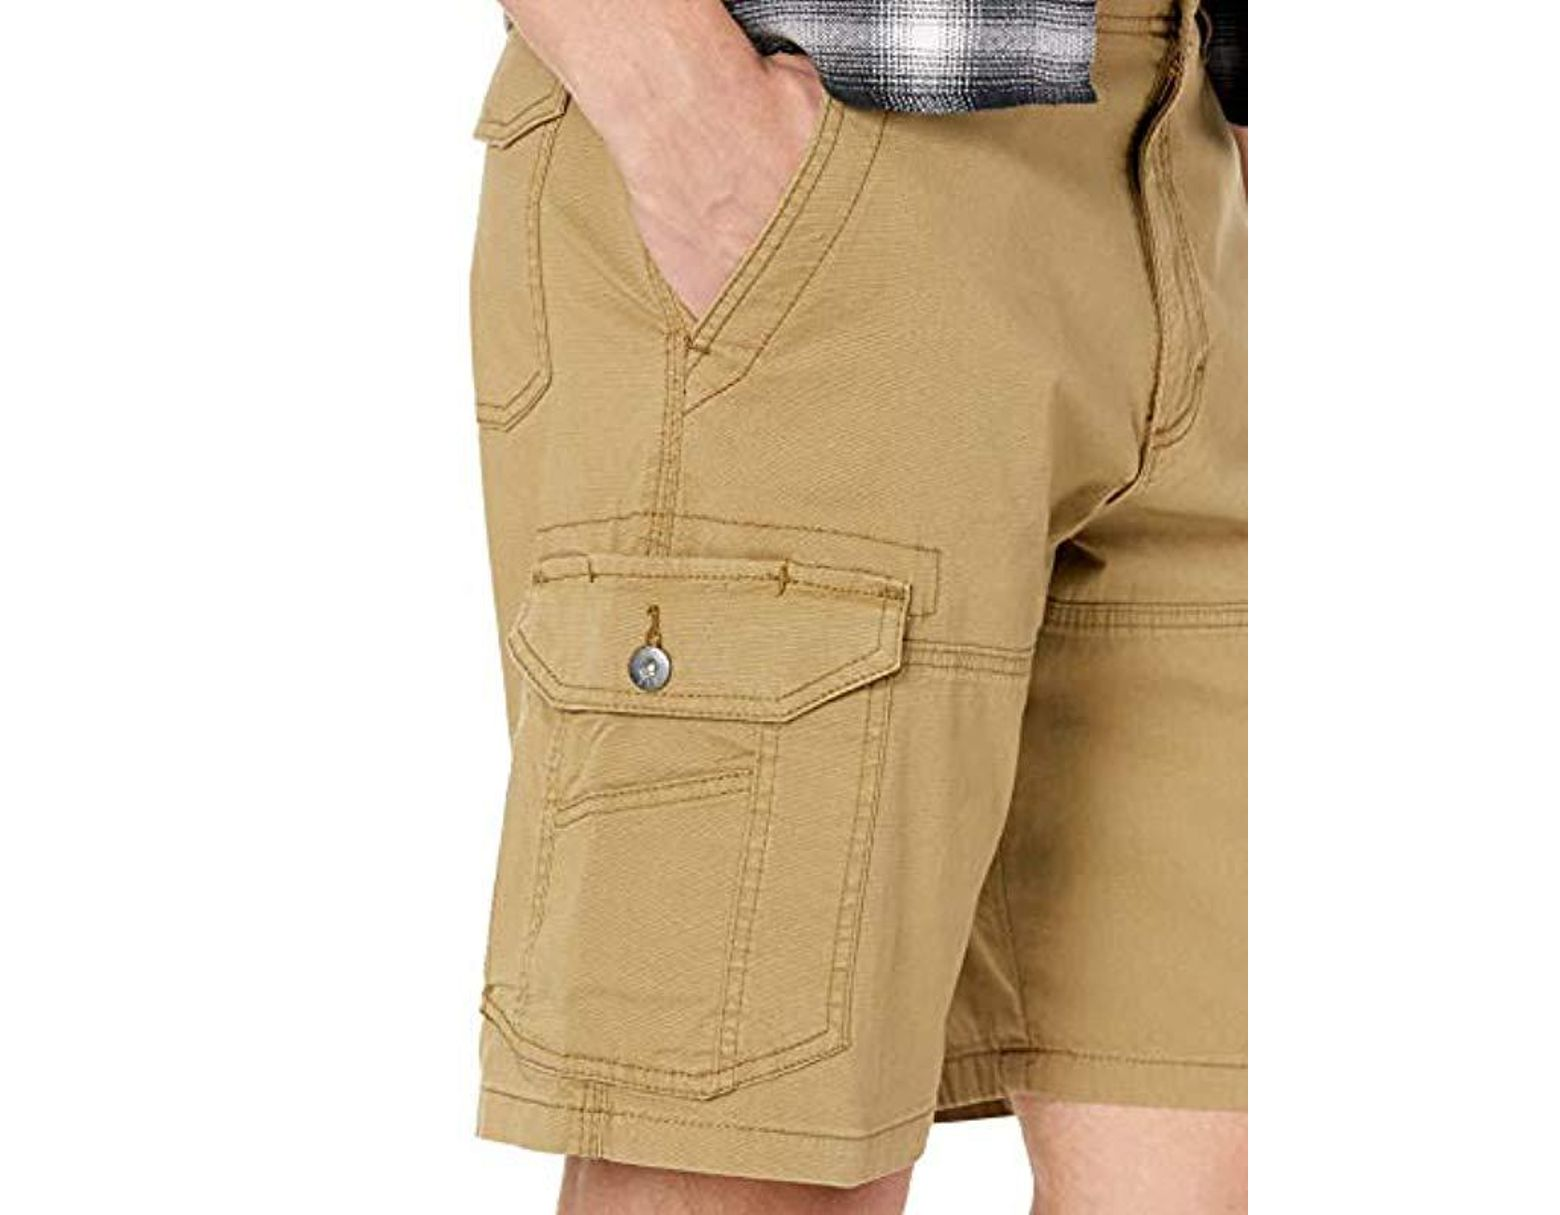 385982e7 Lee Jeans Extreme Motion Swope Cargo Short in Natural for Men - Lyst